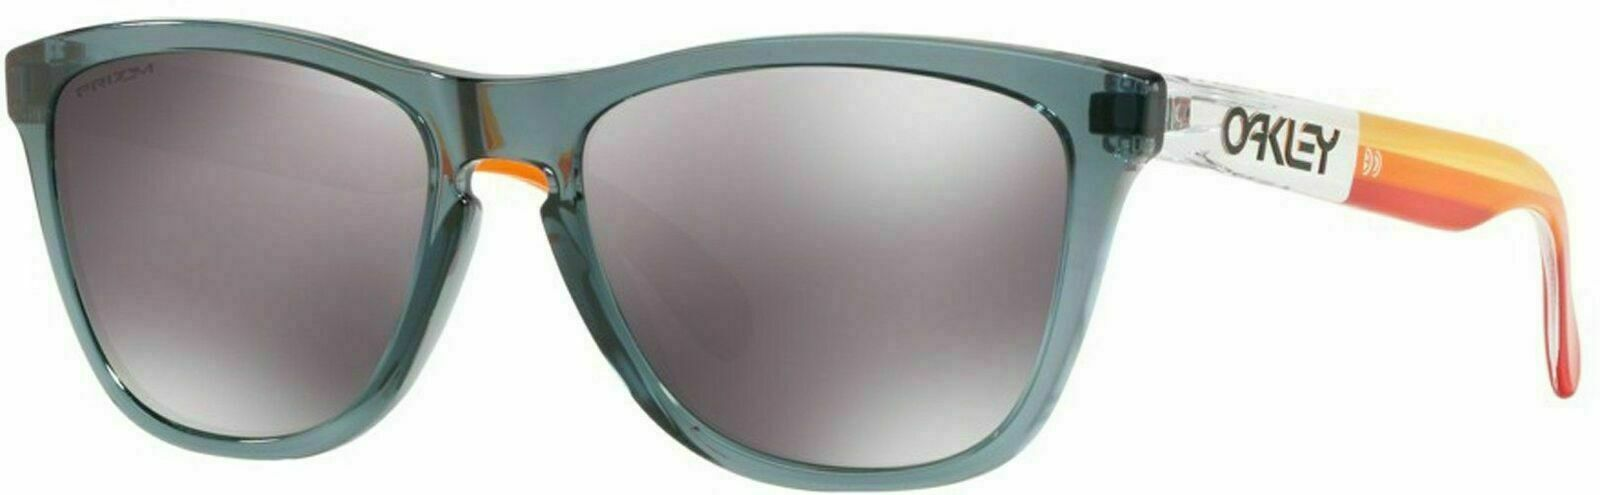 Oakley Frogskins Asia Fit Crystal Black /Prizm Black Lens Sunglasses (OO9245-7054) - Ships Next Day!